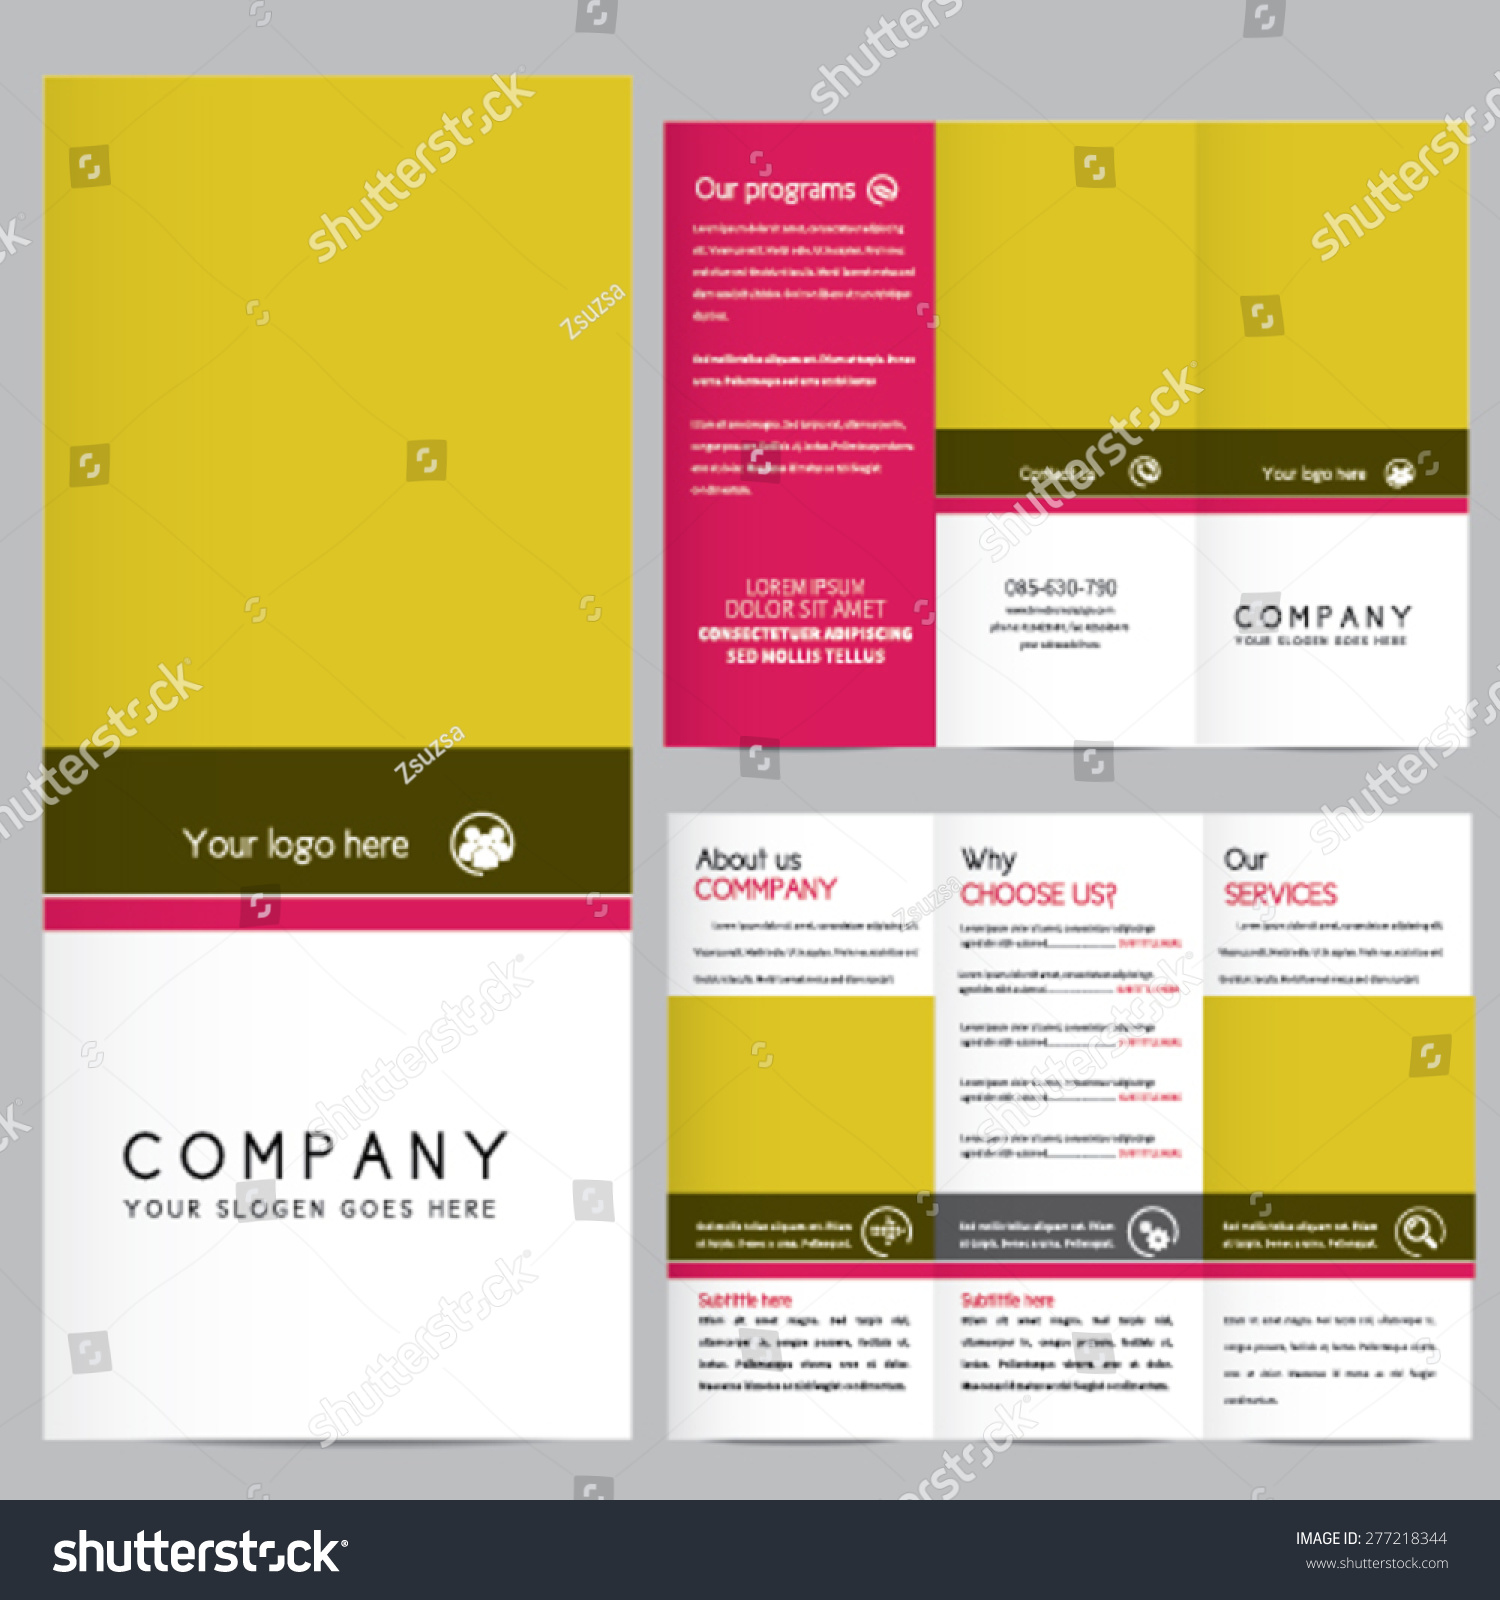 Elegant business brochure template stock vector 277218344 for Elegant brochure templates